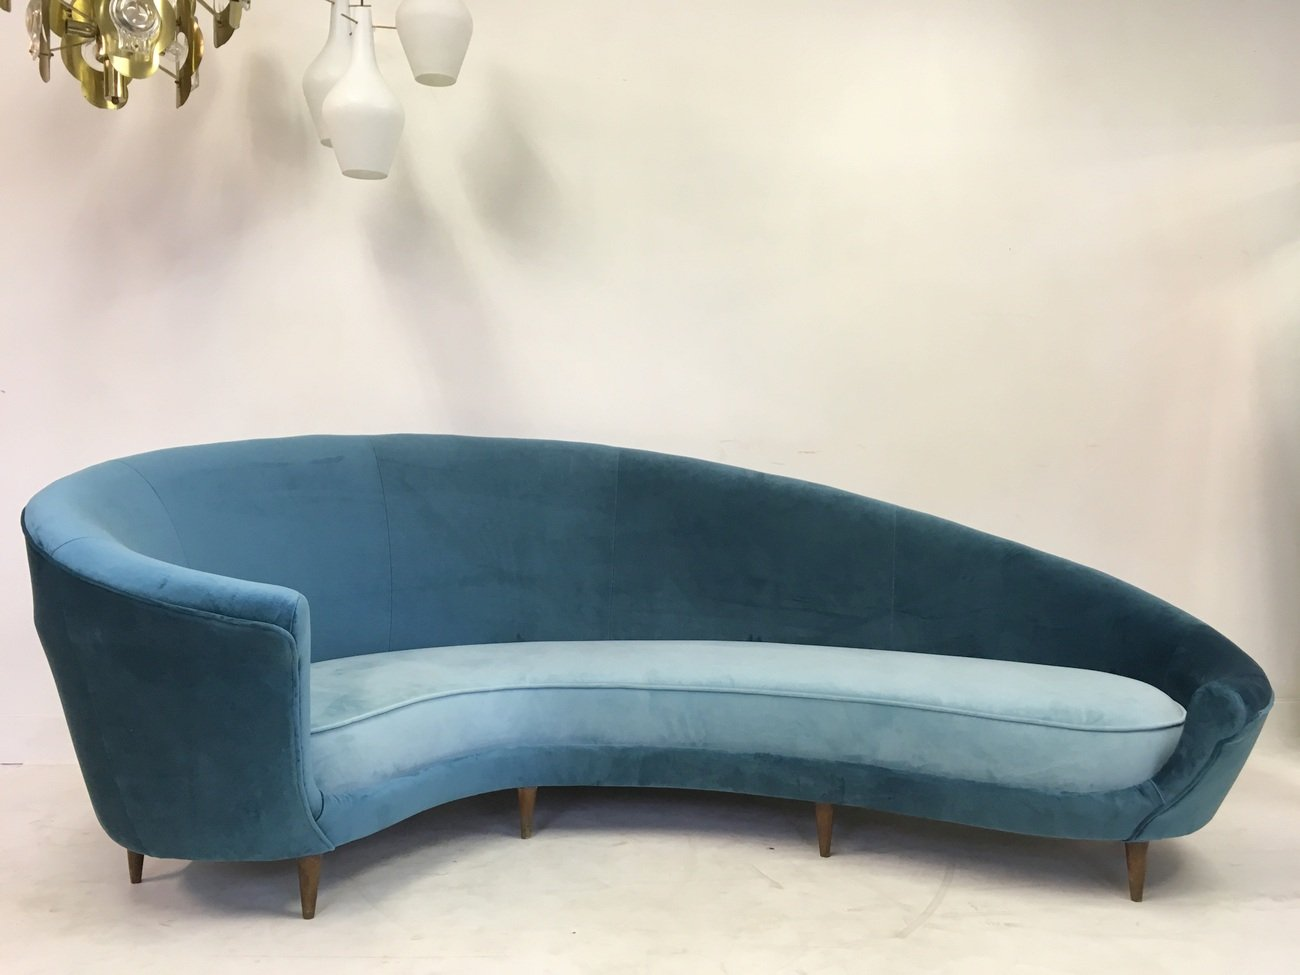 Italian Curved Velvet Sofa 1950s for sale at Pamono